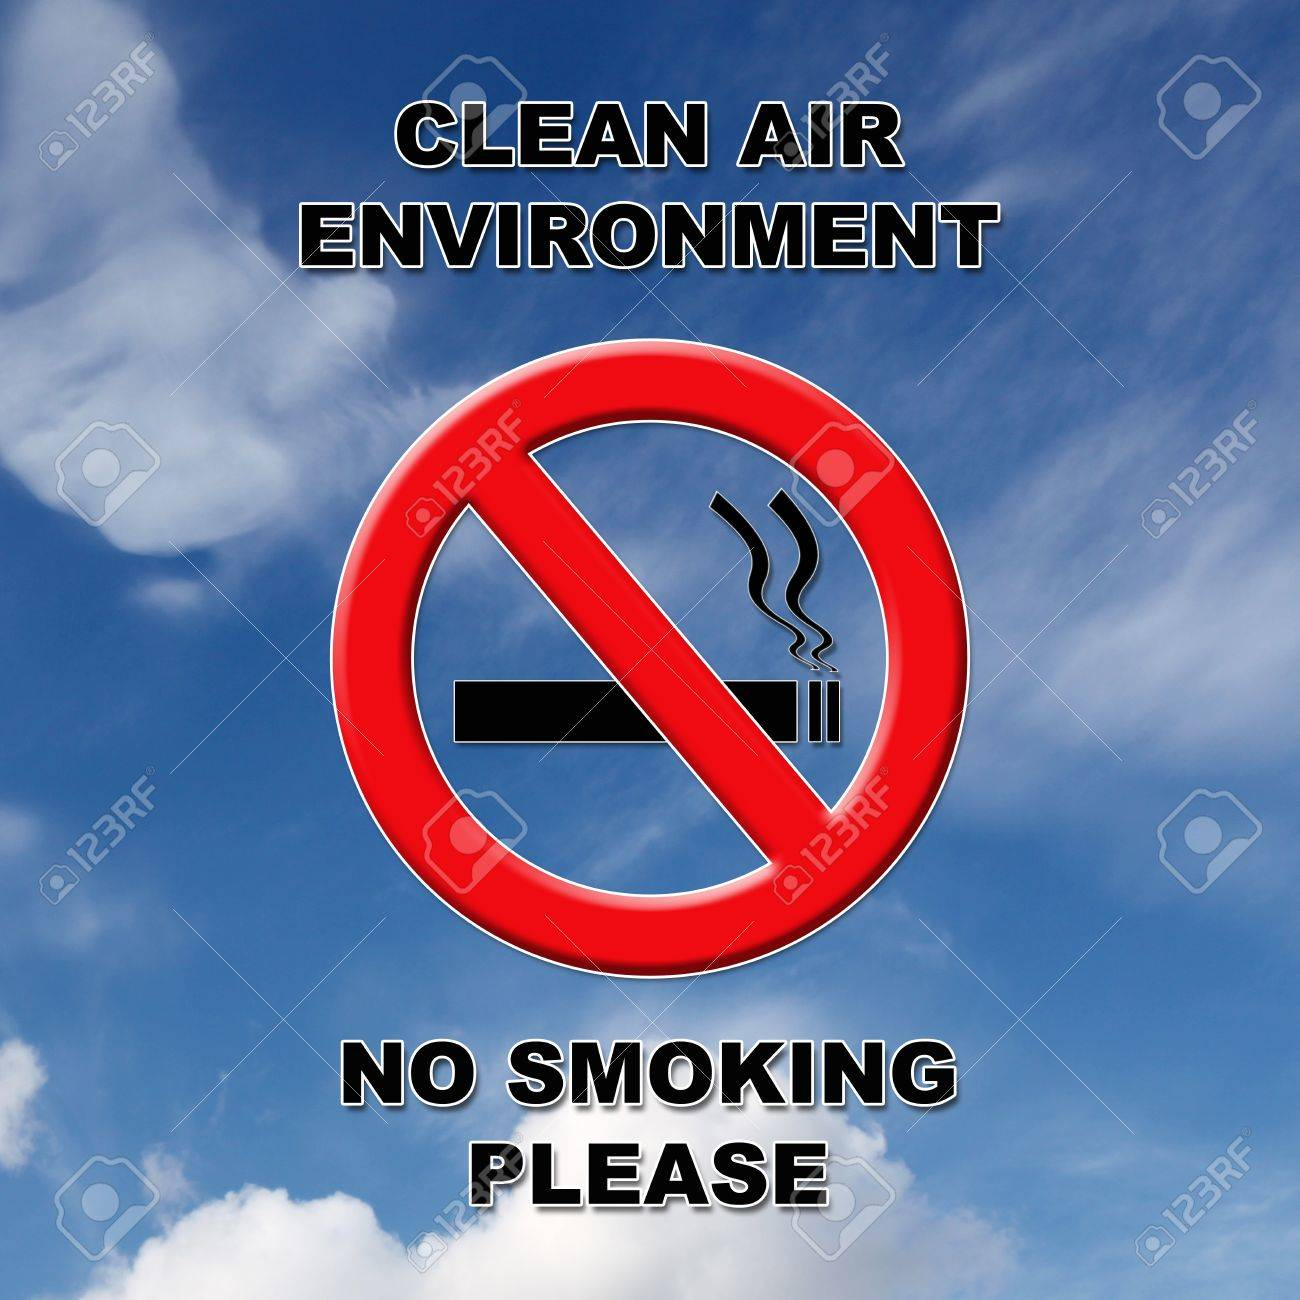 Clean air, no smoking sign in black and red text on a blue sky and cloud background. Stock Photo - 12535066